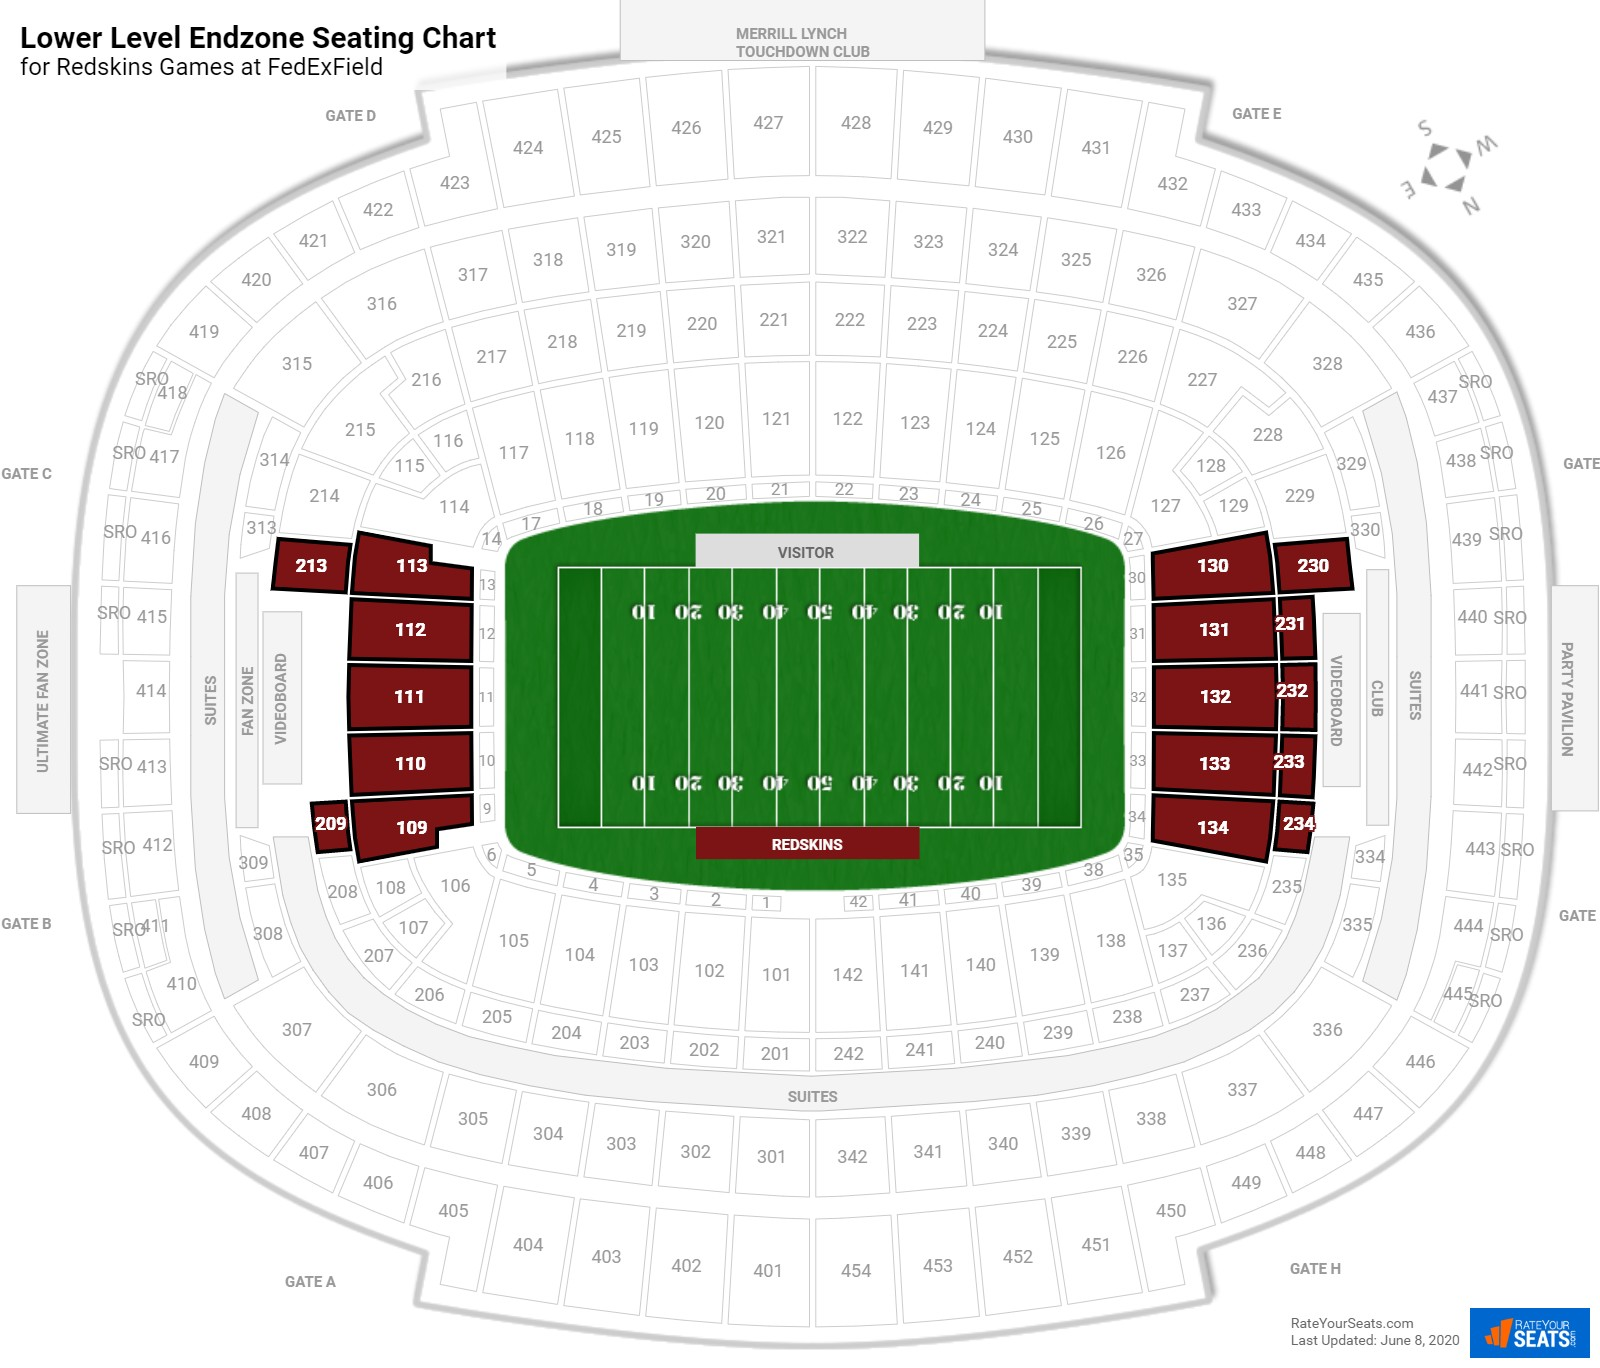 FedExField Lower Level Endzone seating chart